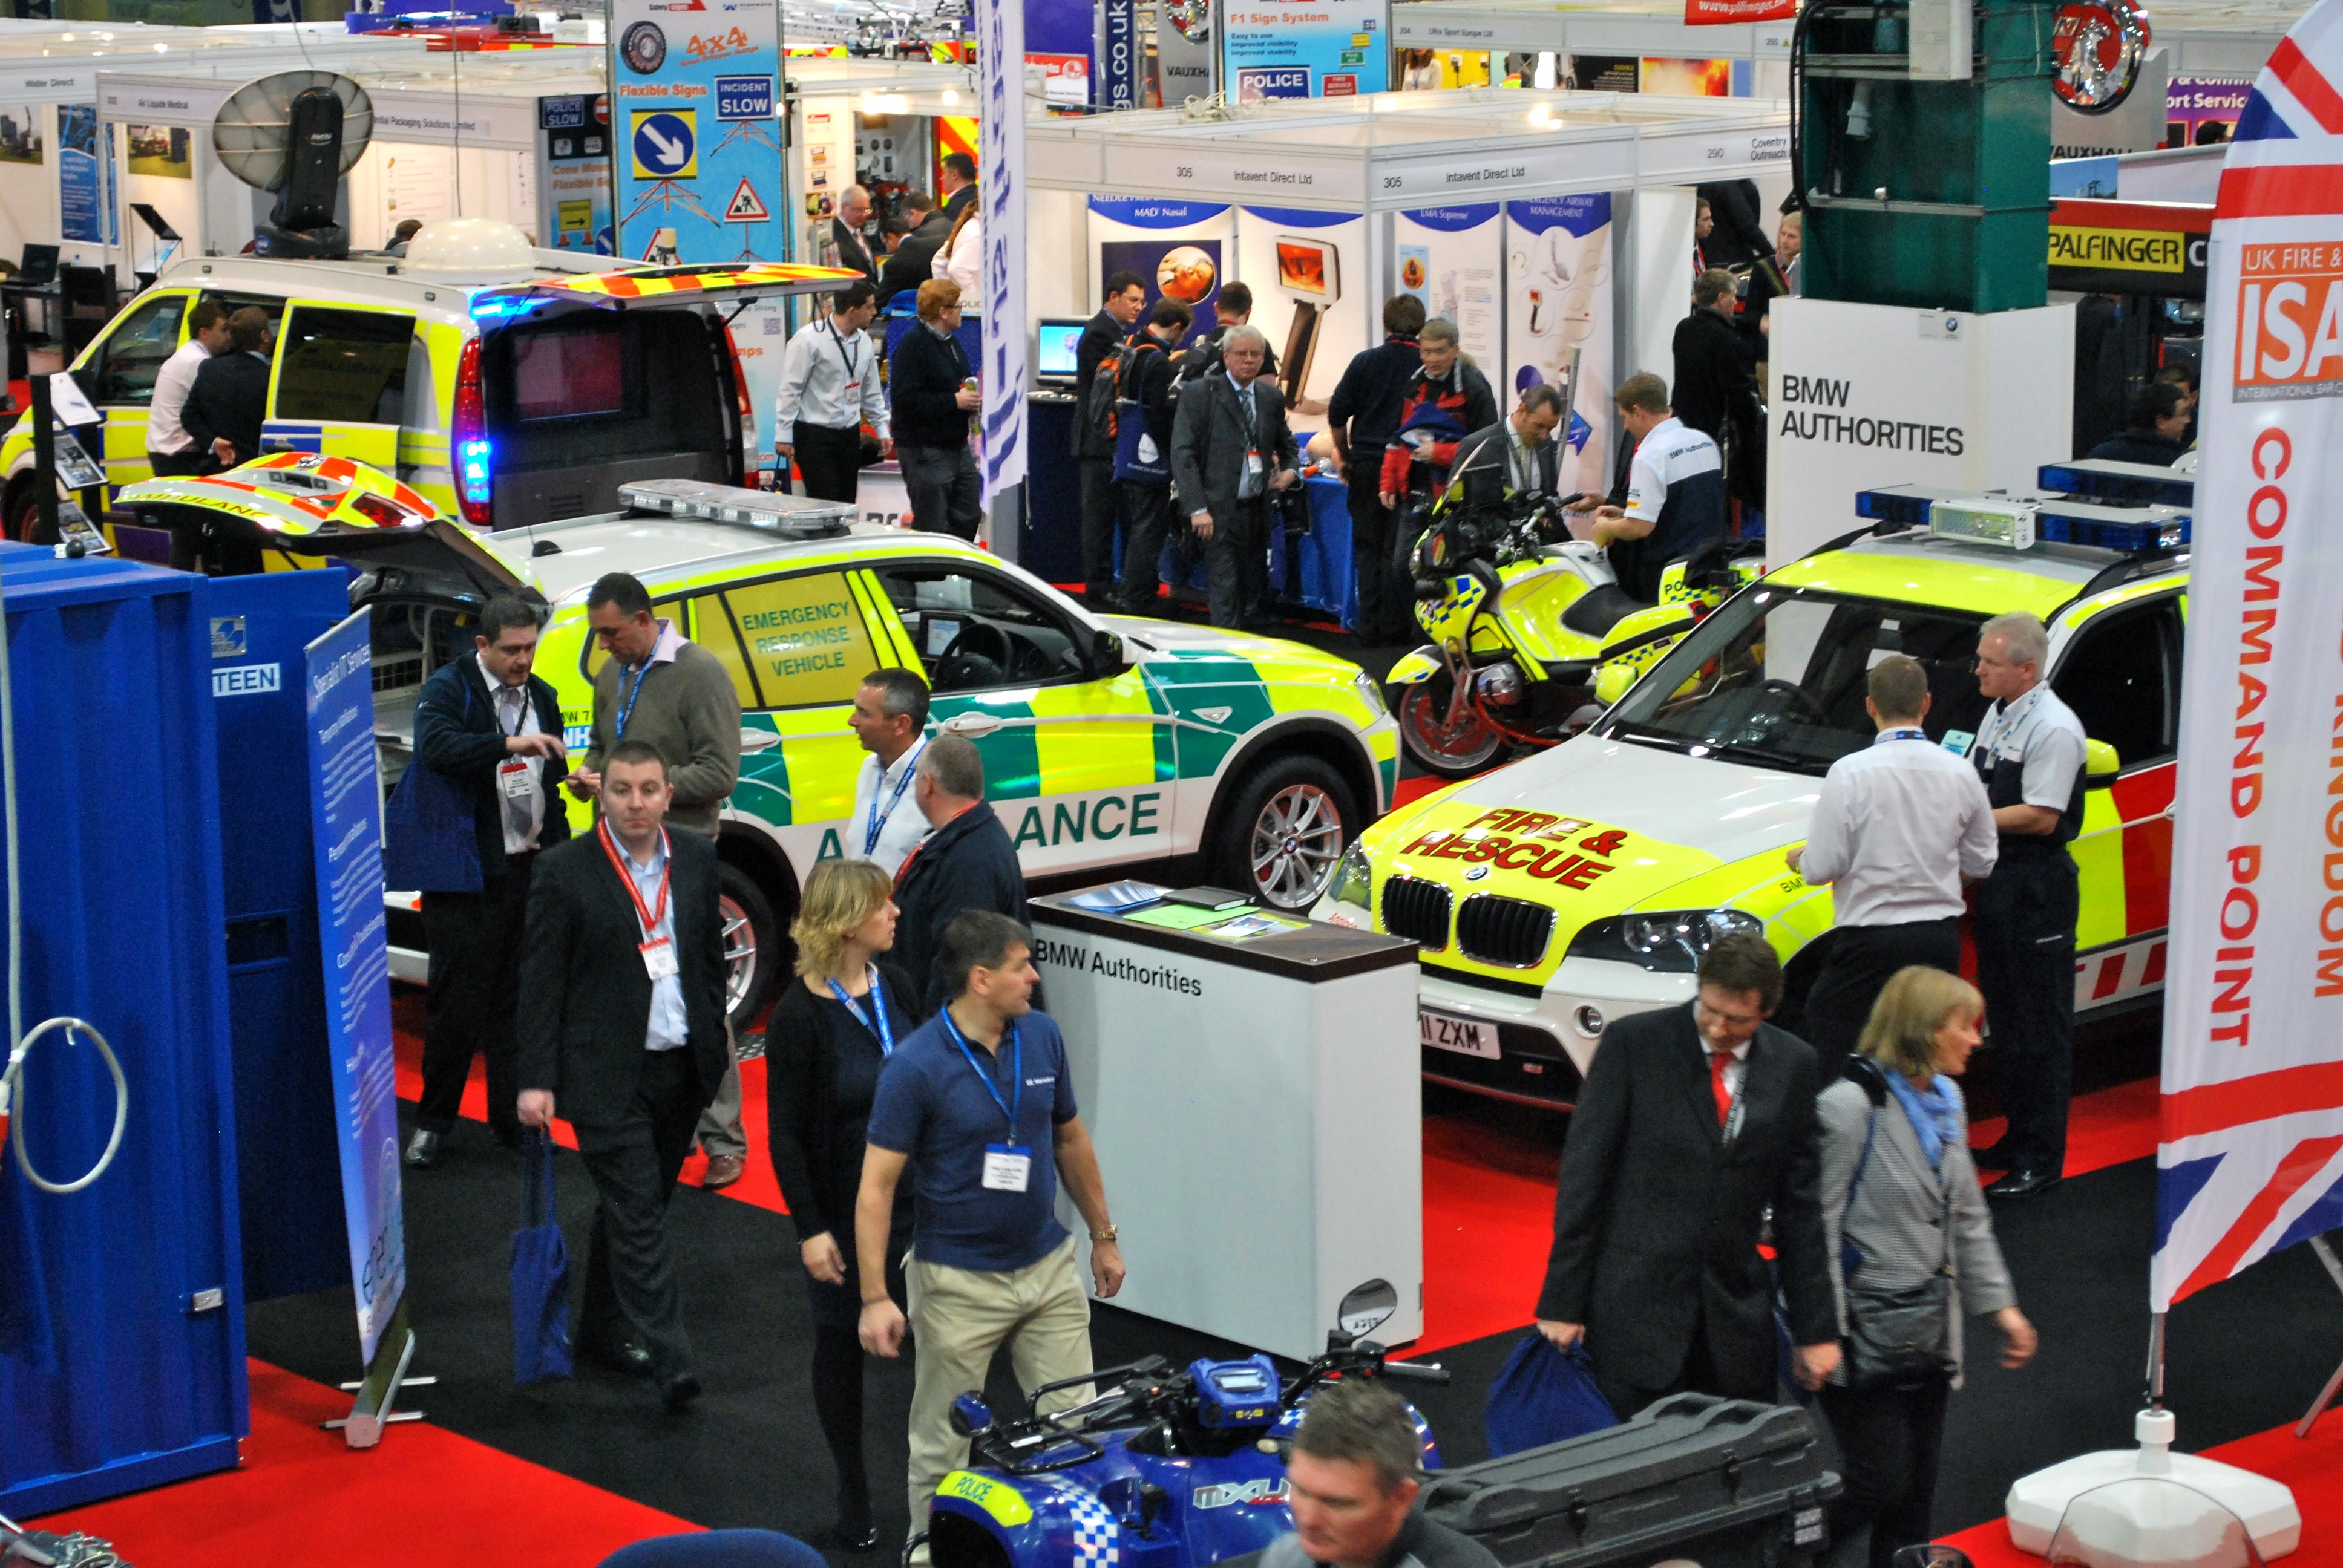 Less than a month until the Emergency Services Show!